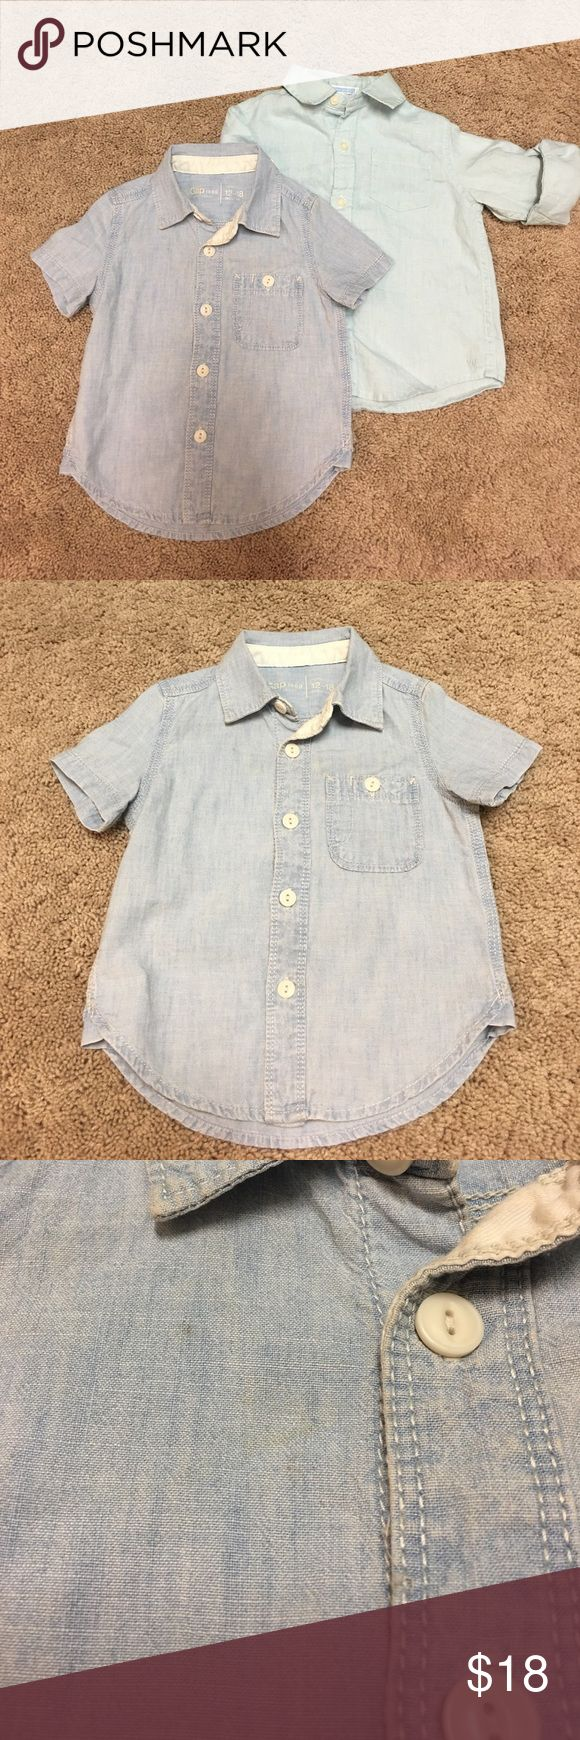 Janie and Jack/Gap bundle dress shirts Great used condition. Only worn for special occasions. Short sleeve denim button down shirt from baby GAP size 12-18 months. And long sleeve linen button down in a light pastel teal from Janie and Jack size 12-18 months. Can roll sleeve up and have a button cuff. See pictures for minor discoloration imperfections on each shirt. Only noticeable when doing a close inspection. Comment with questions and check out my closet for more toddler boy dress…